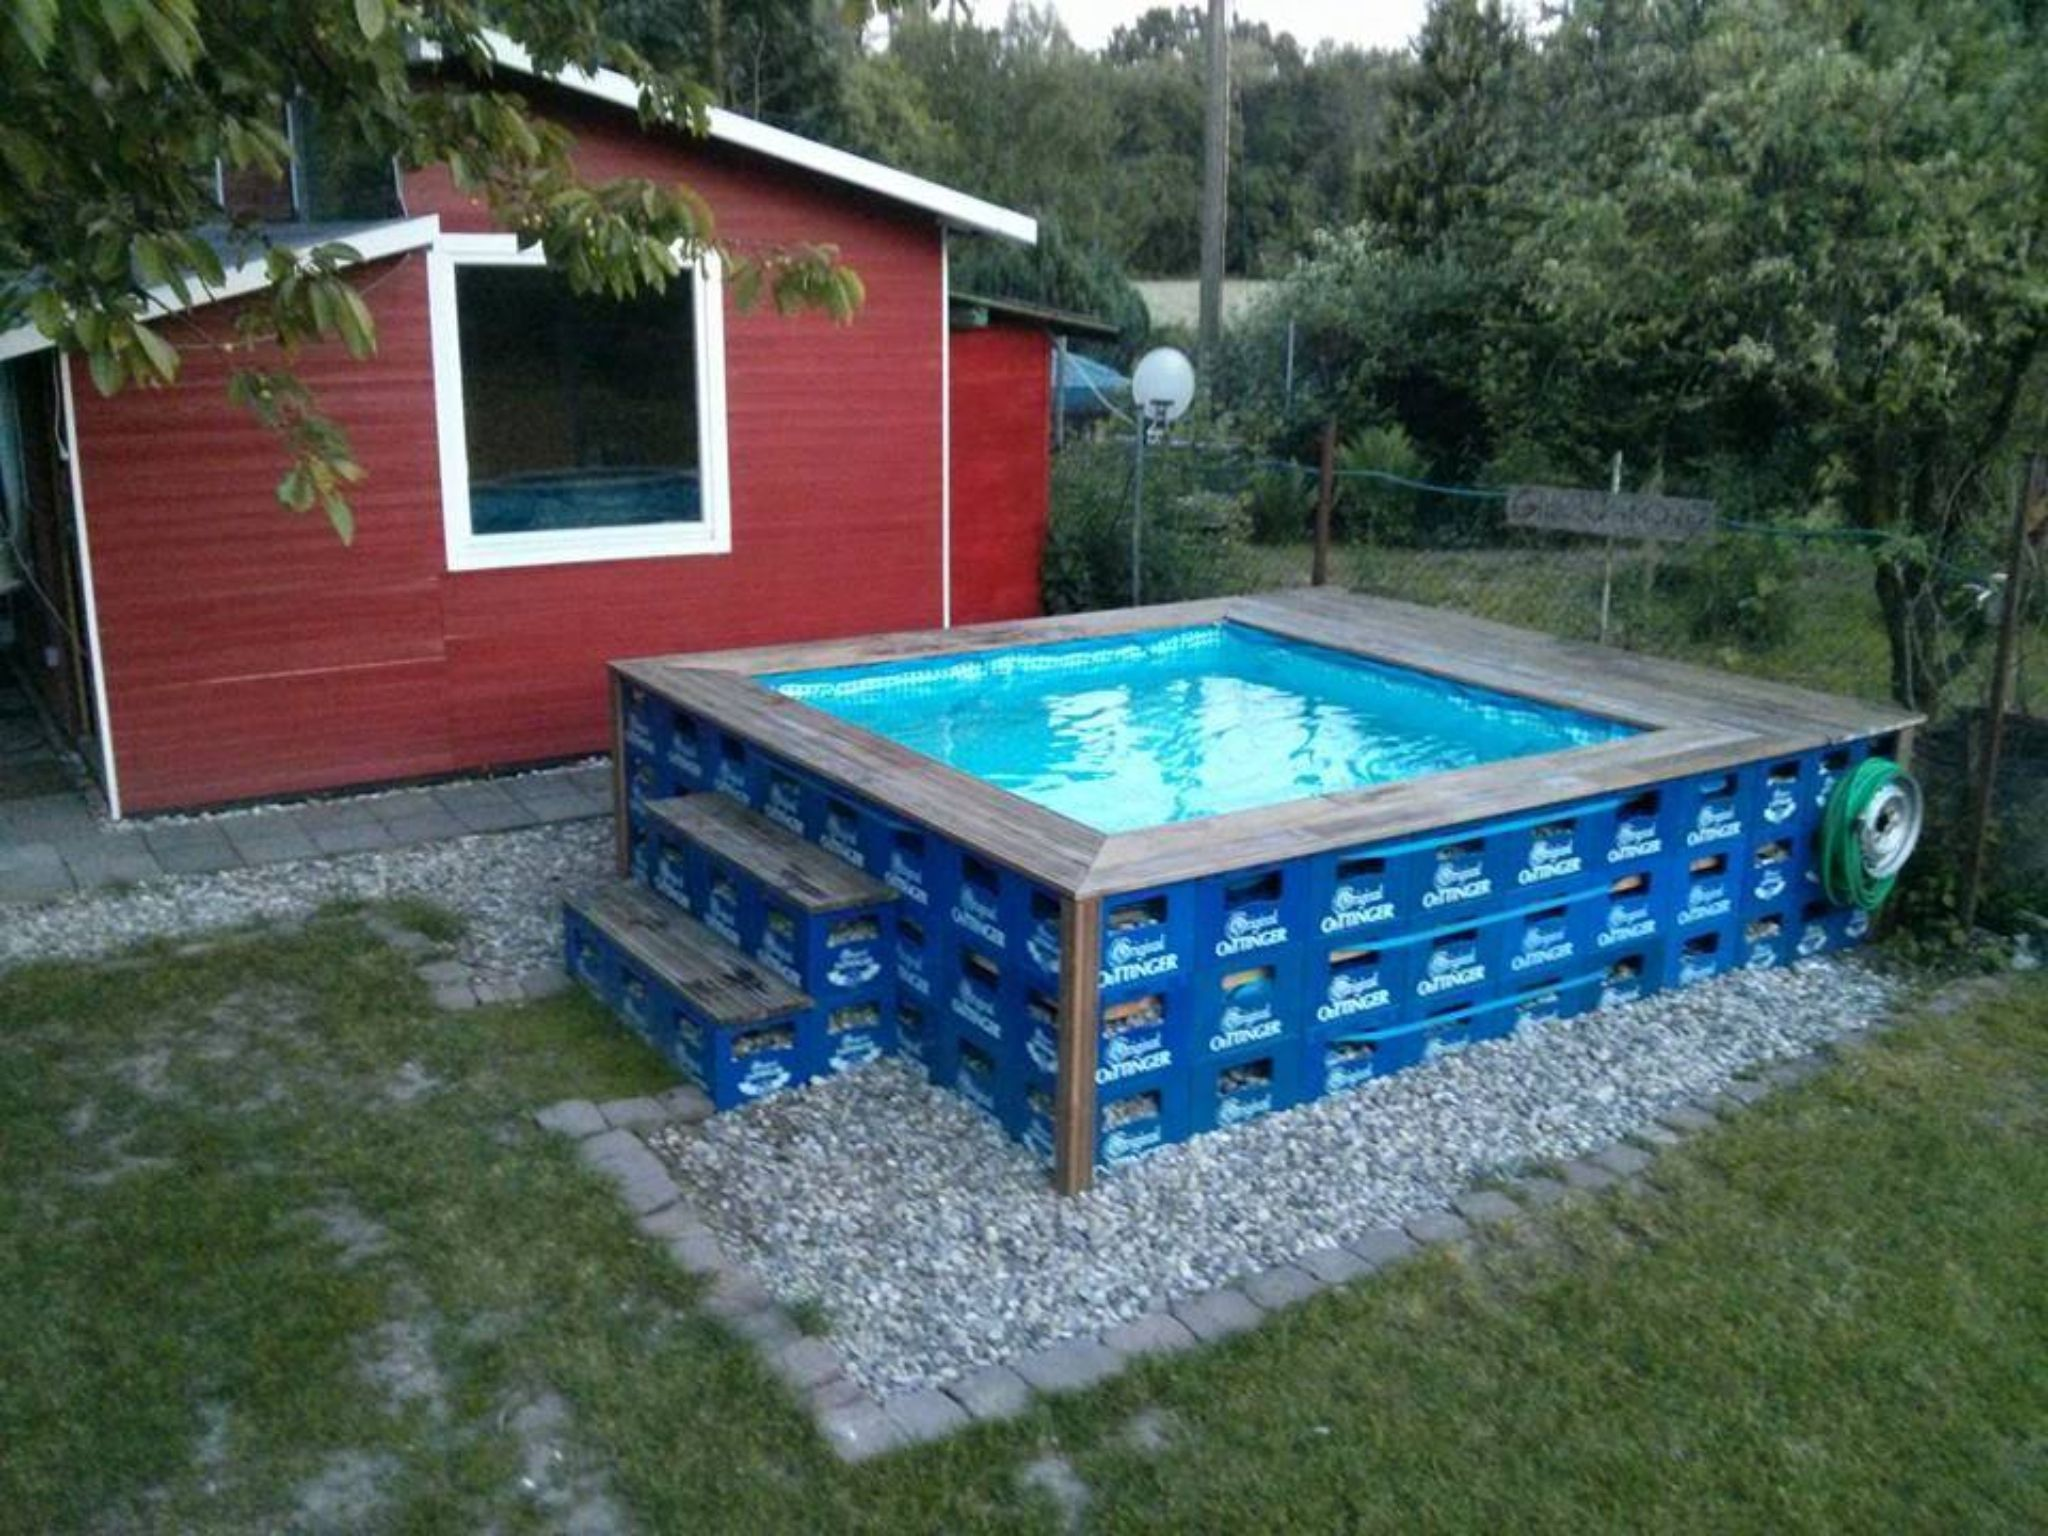 pool aus bierkästen | diy - do it yourself | pinterest | piscine